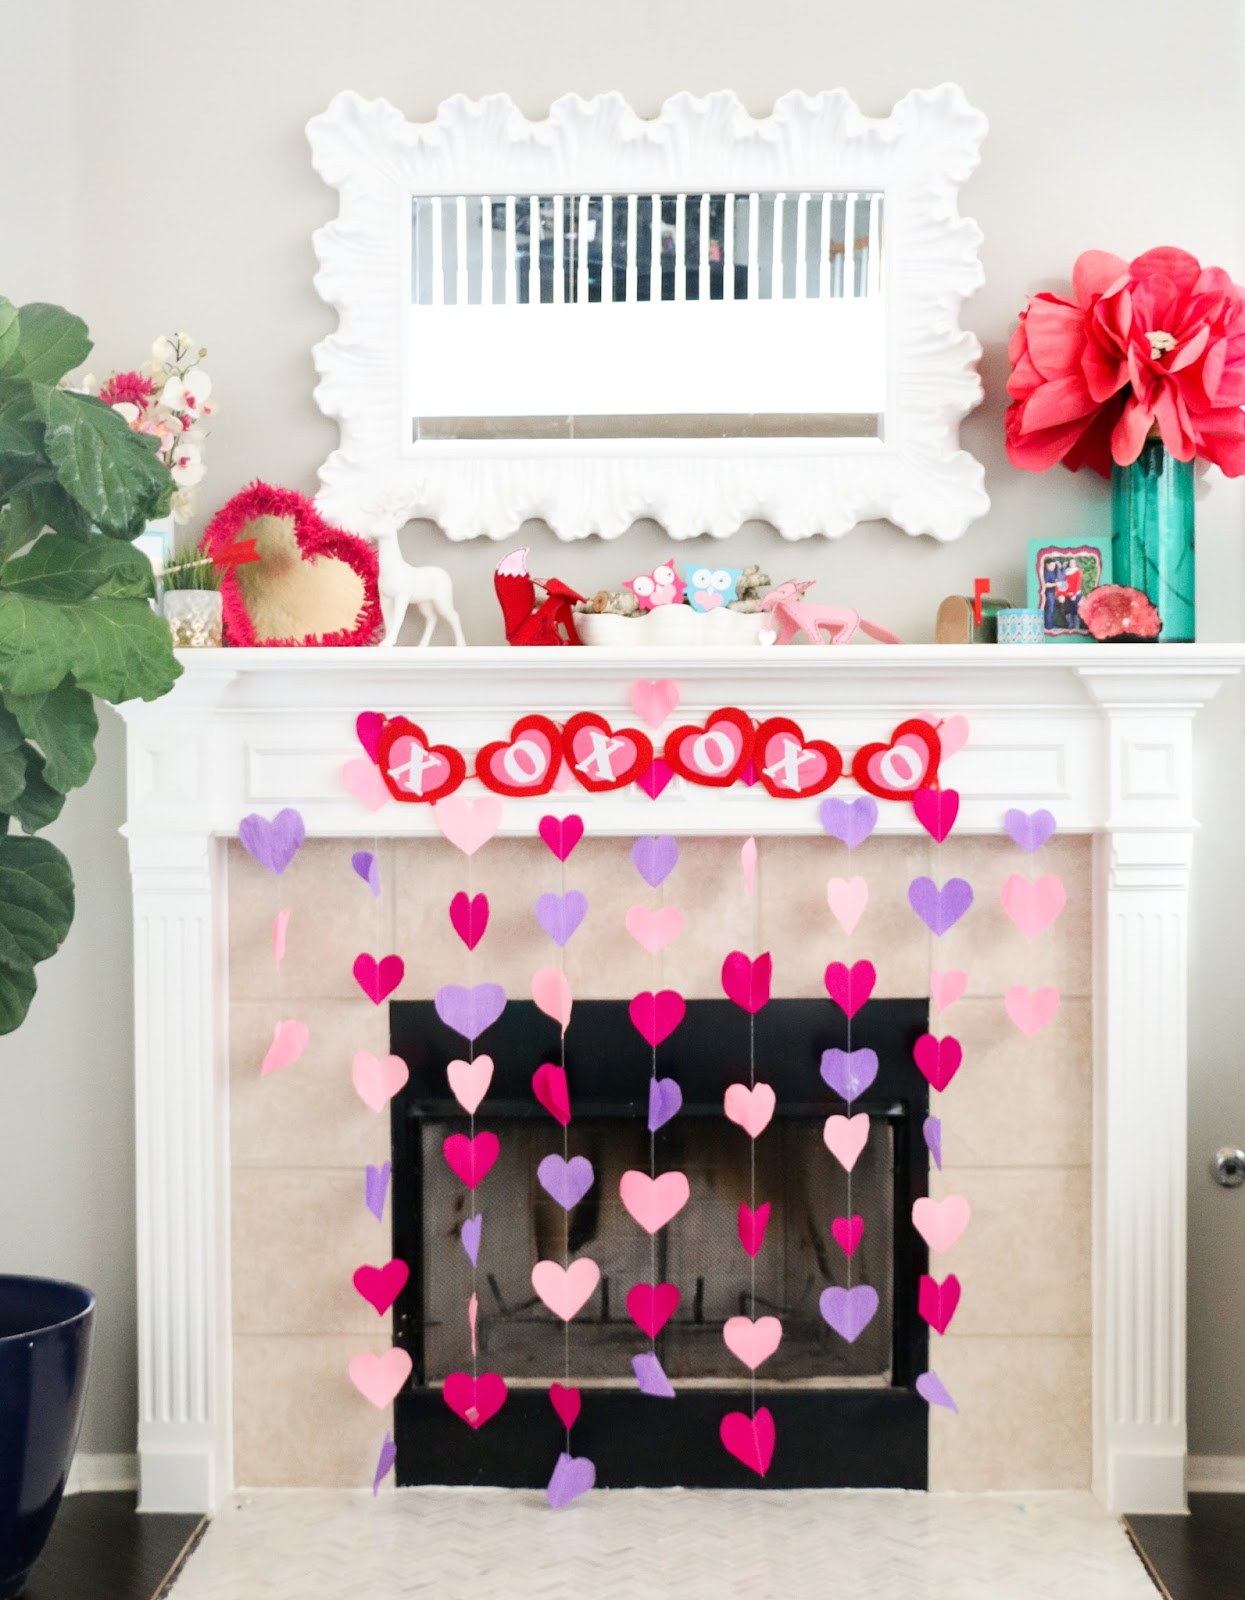 Diy it crepe paper heart decorations a kailo chic life for Decor using crepe paper